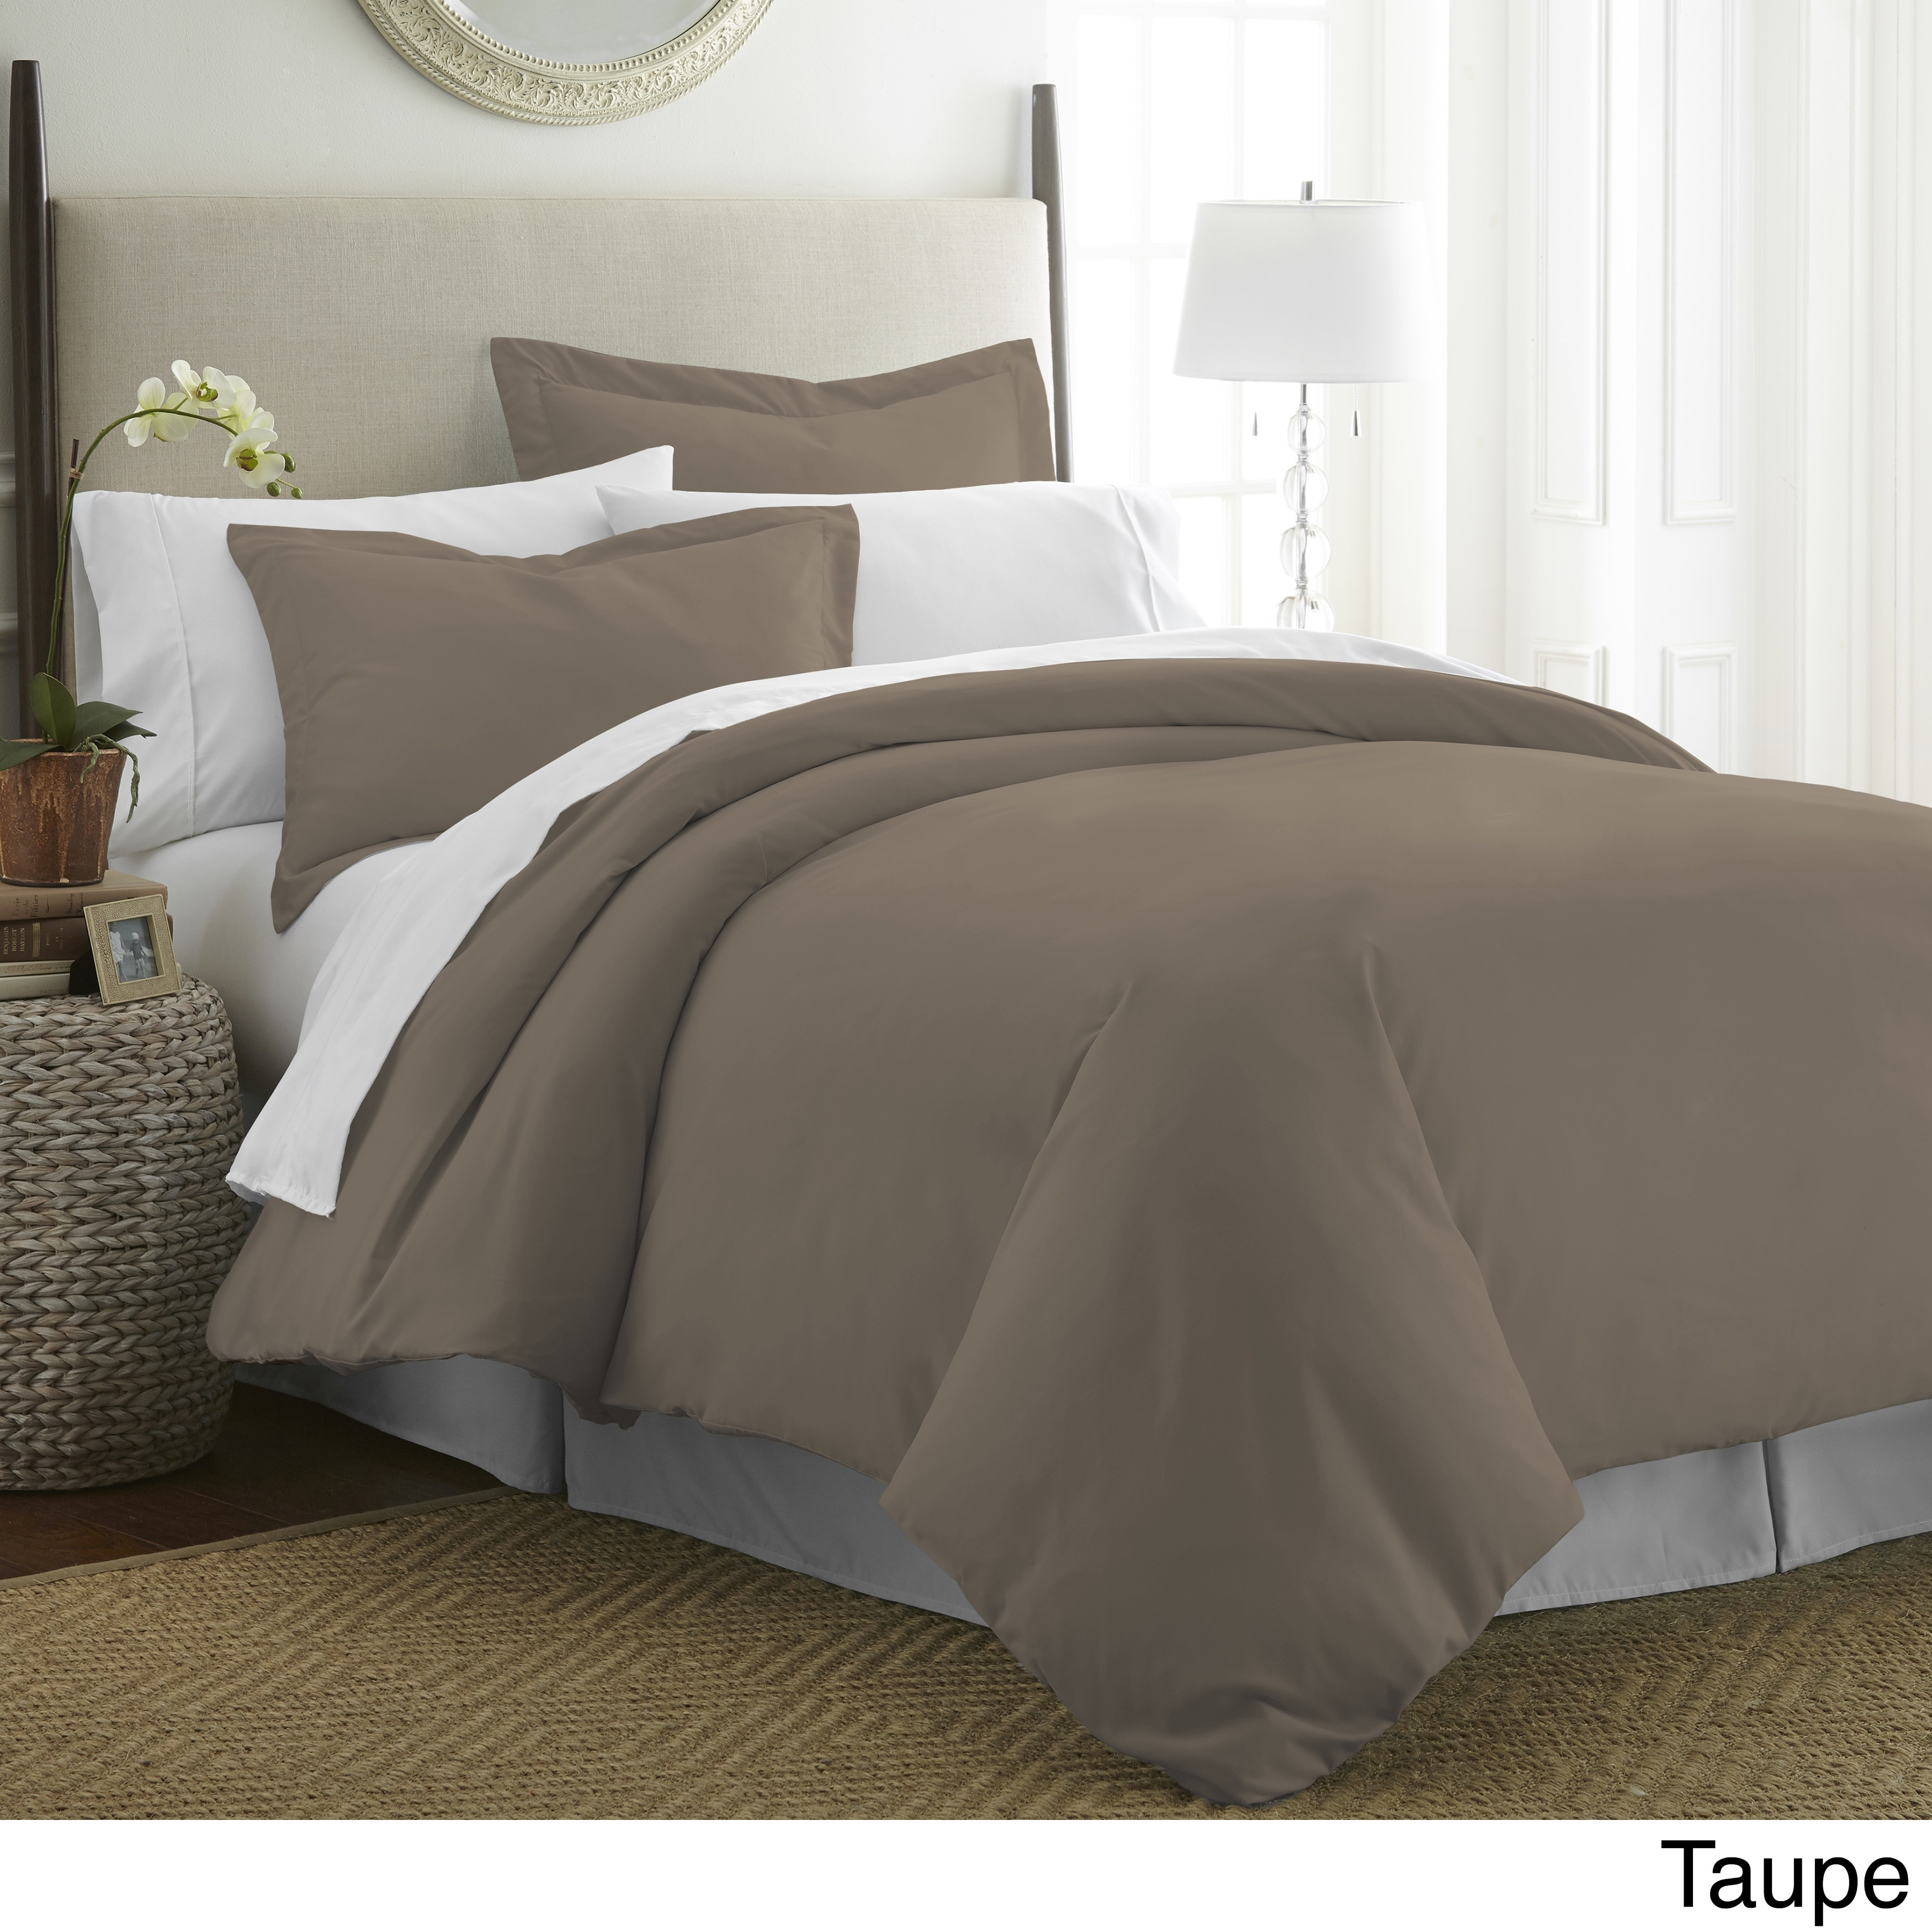 Becky Cameron Hotel Quality 3 Piece Duvet Cover Set Free Shipping On Orders Over 45 17226570